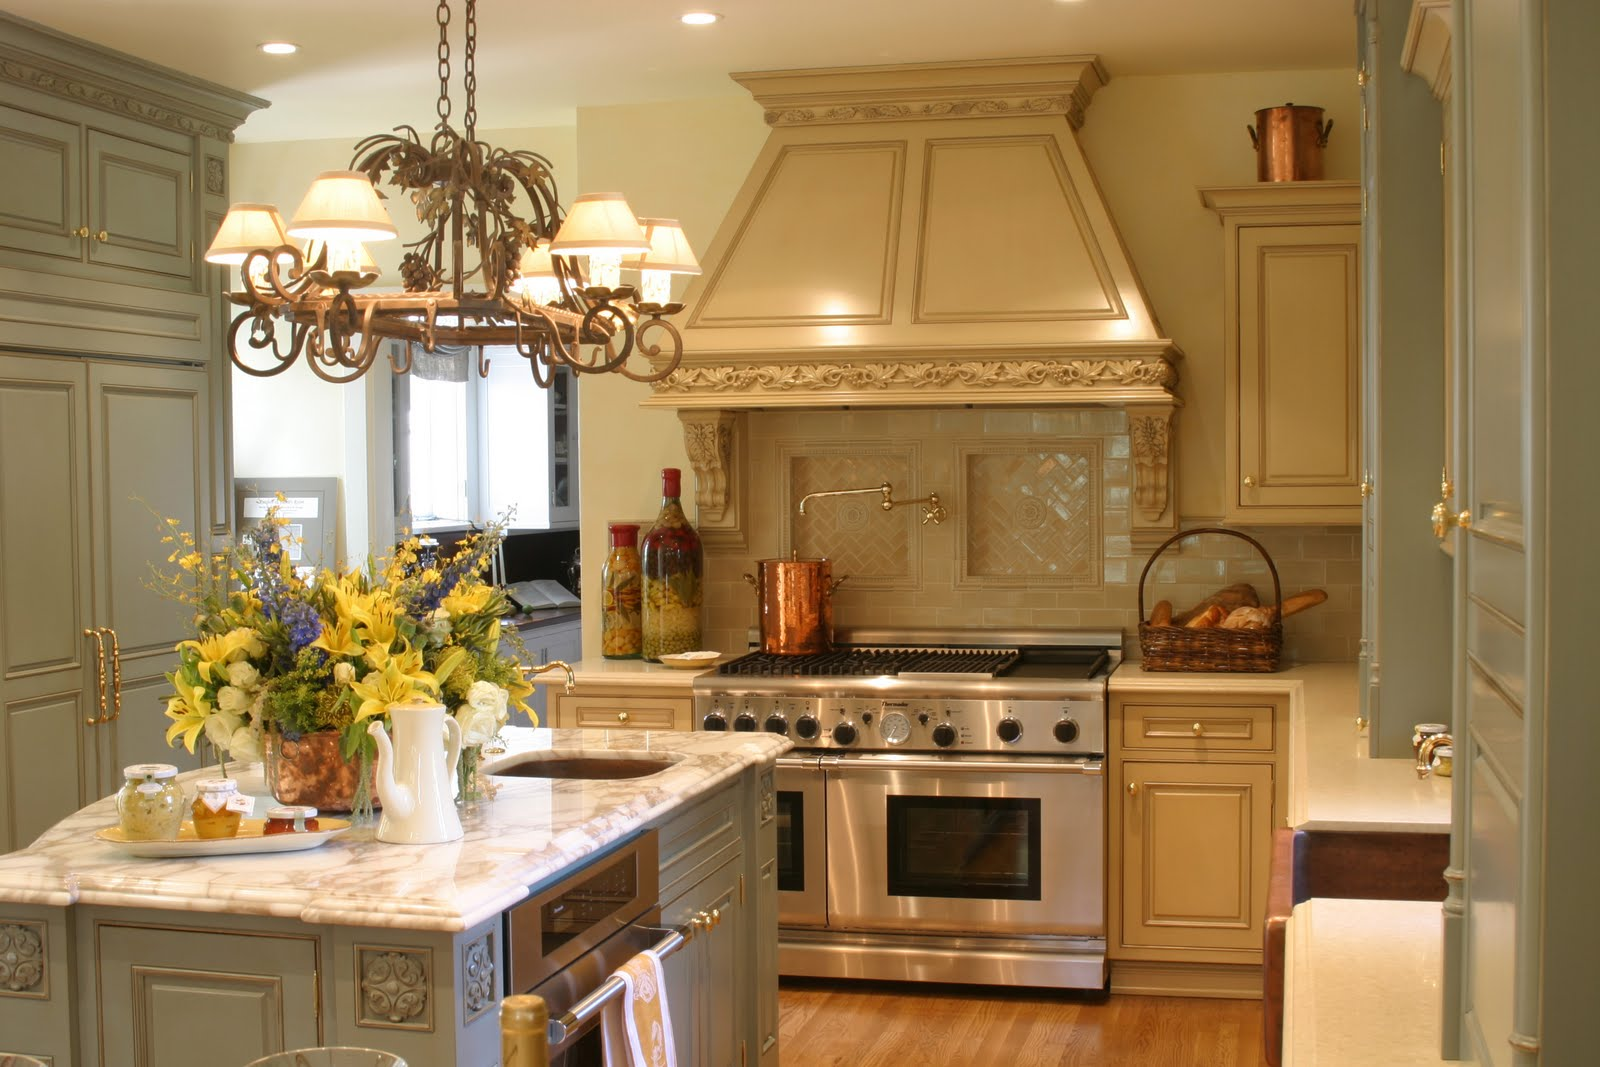 cost of small kitchen remodel small kitchen remodels cost of small kitchen remodel photo 2